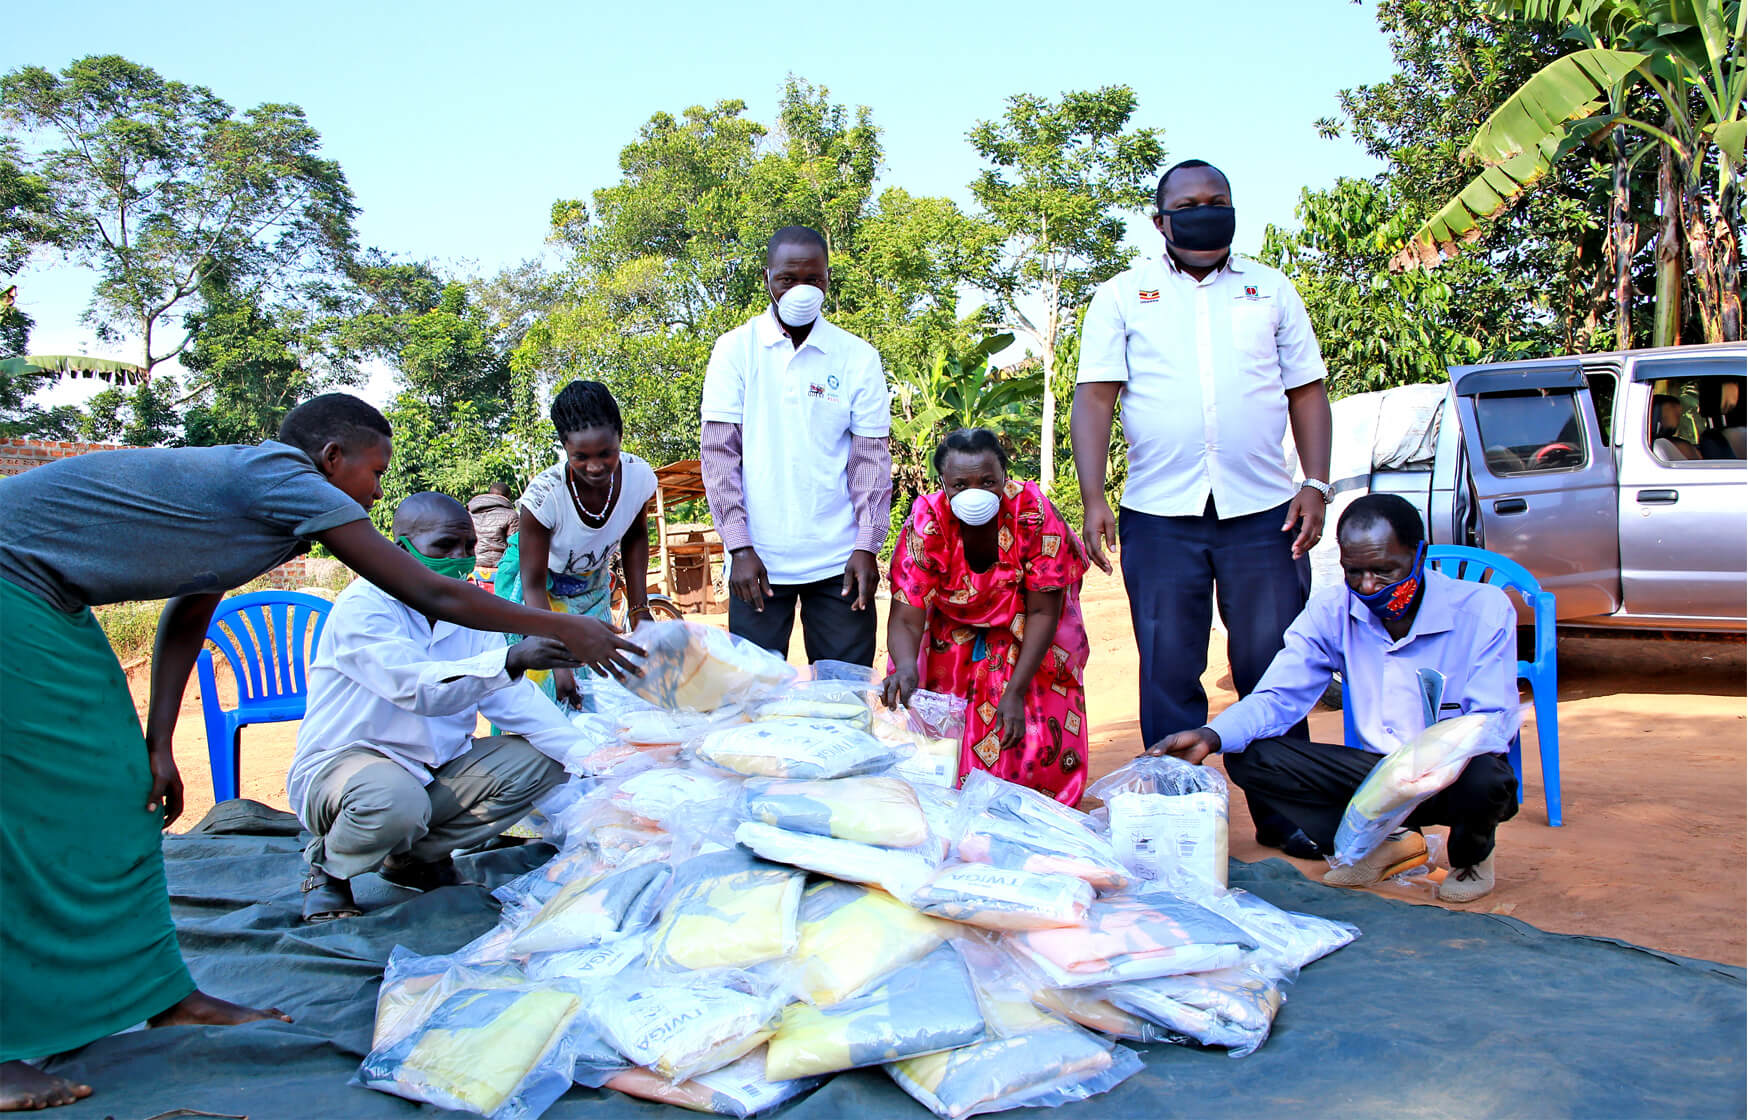 Collecting mosquito nets in Uganda